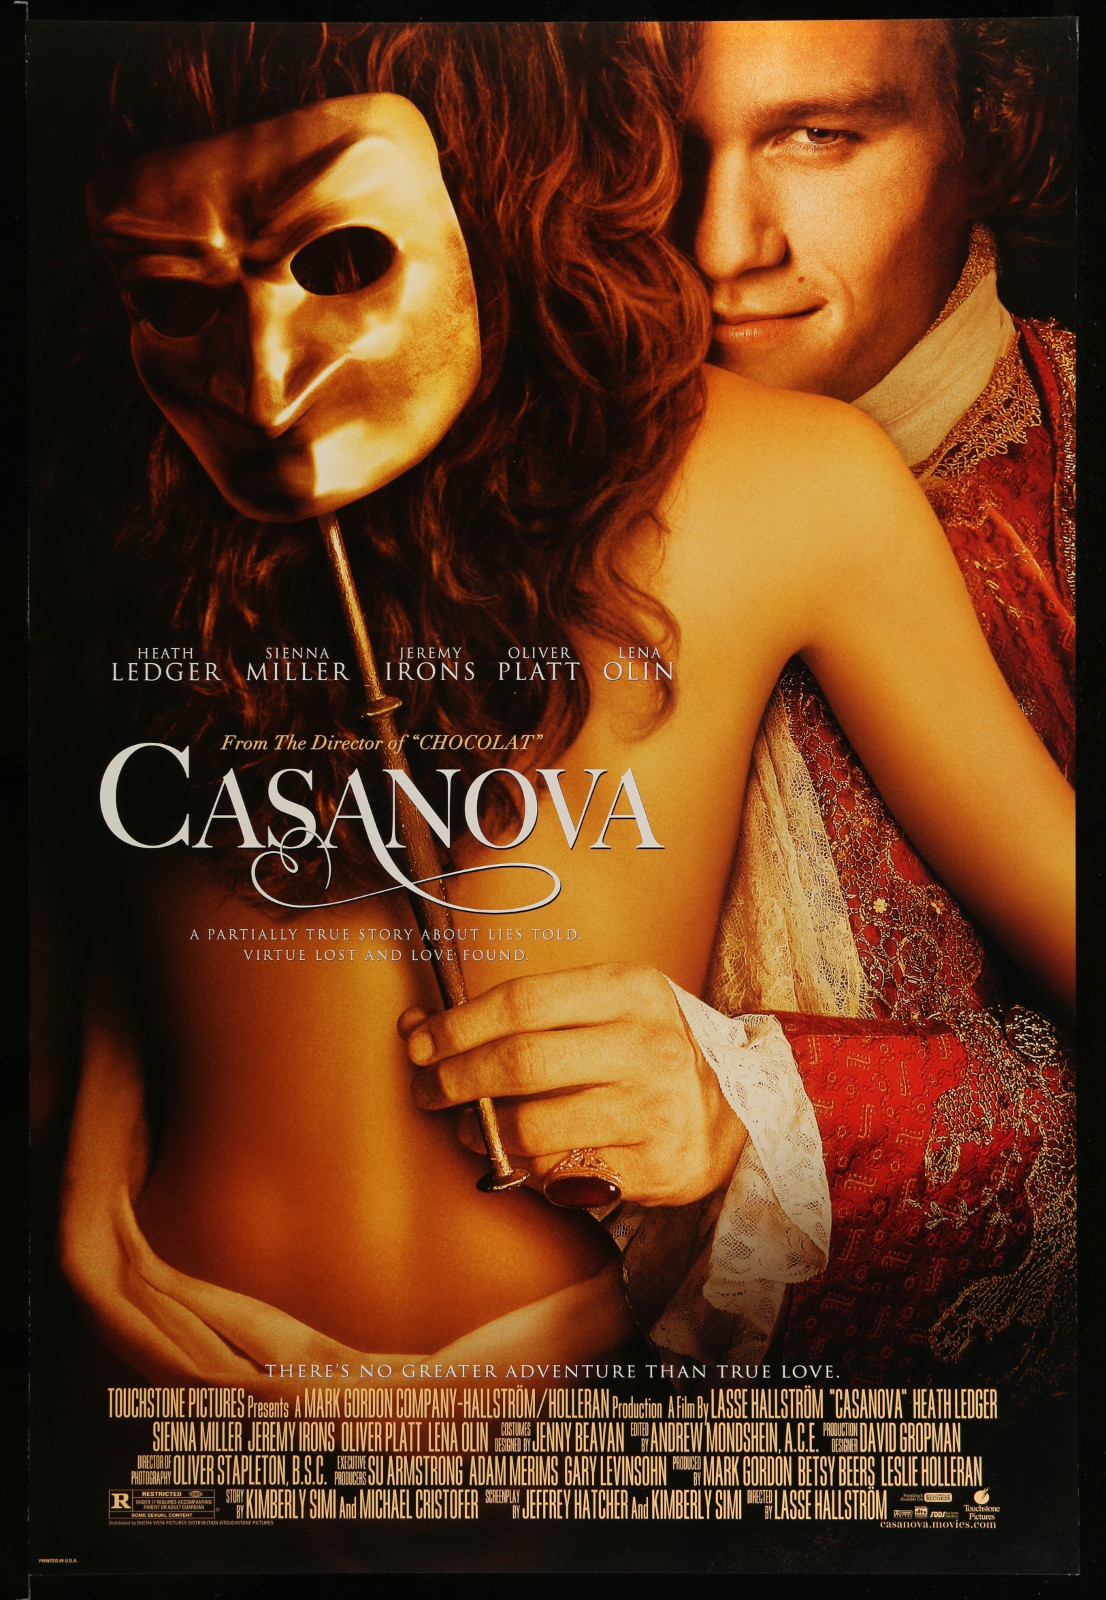 Casanova 2A396 A Part Of A Lot 22 Unfolded Mostly Double-Sided 27X40 One-Sheets '00S A Variety Of Movie Images!